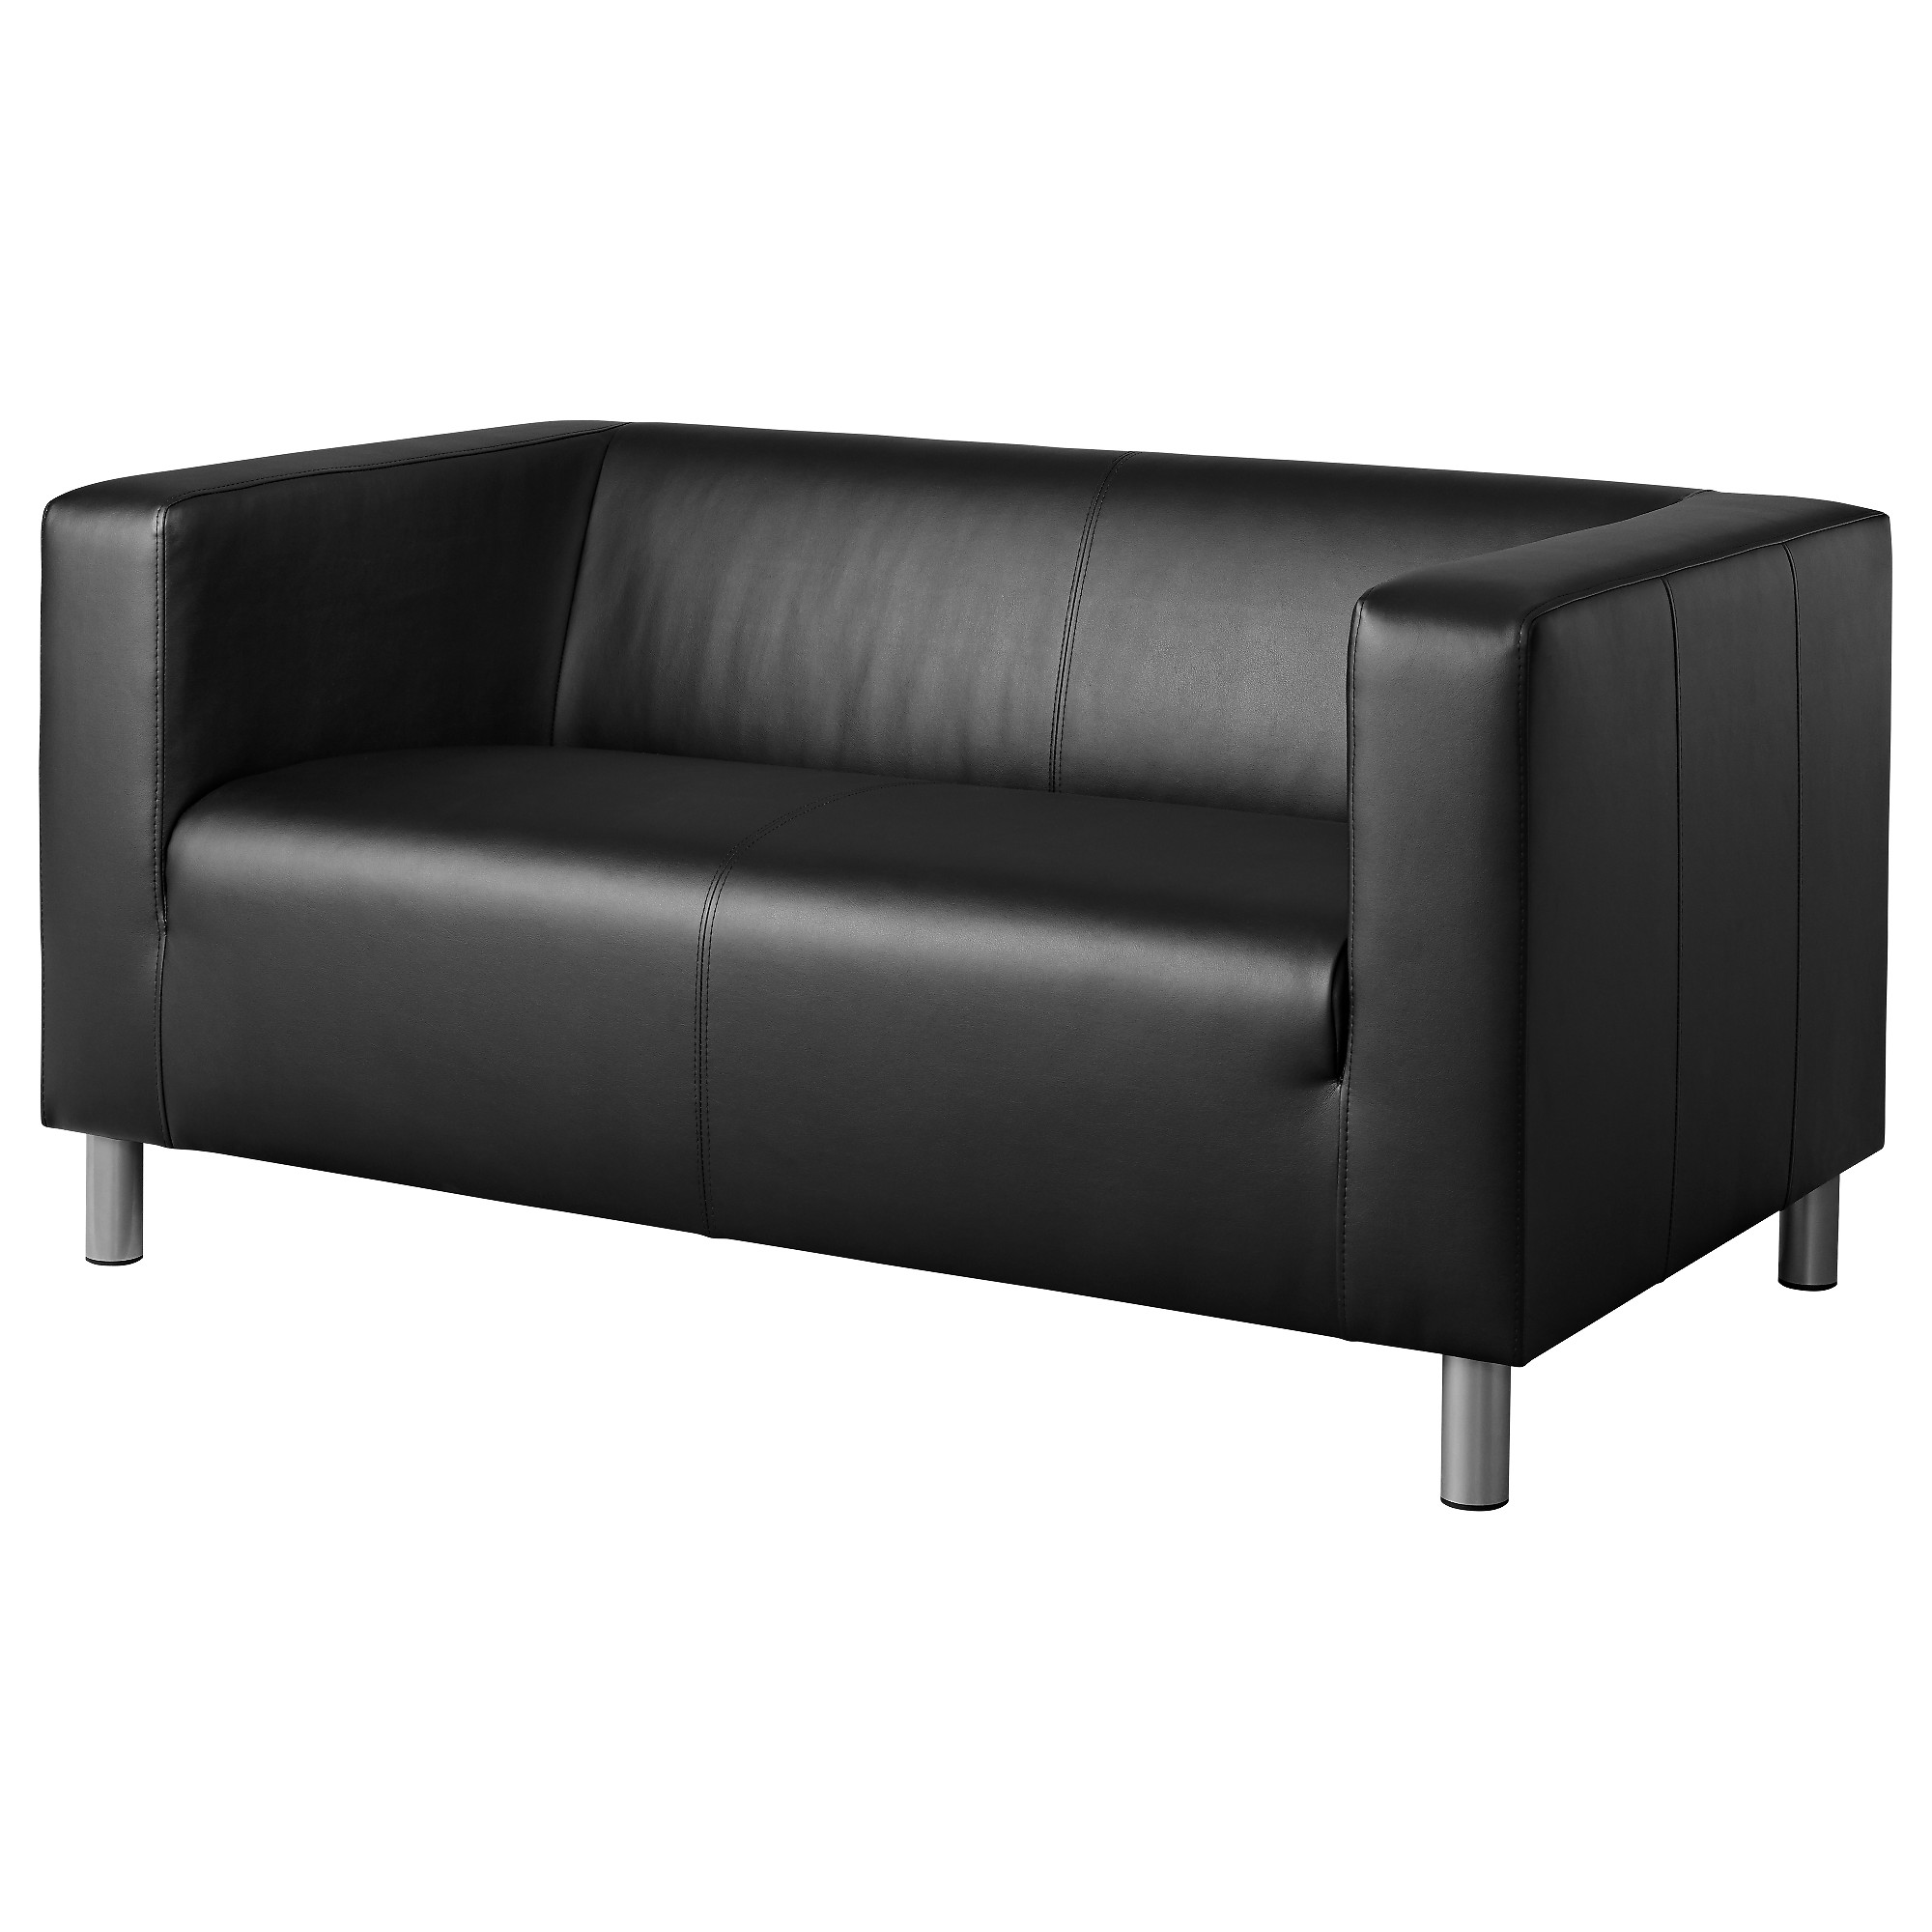 ikea sofa 2 seater – jarvisnigro.co